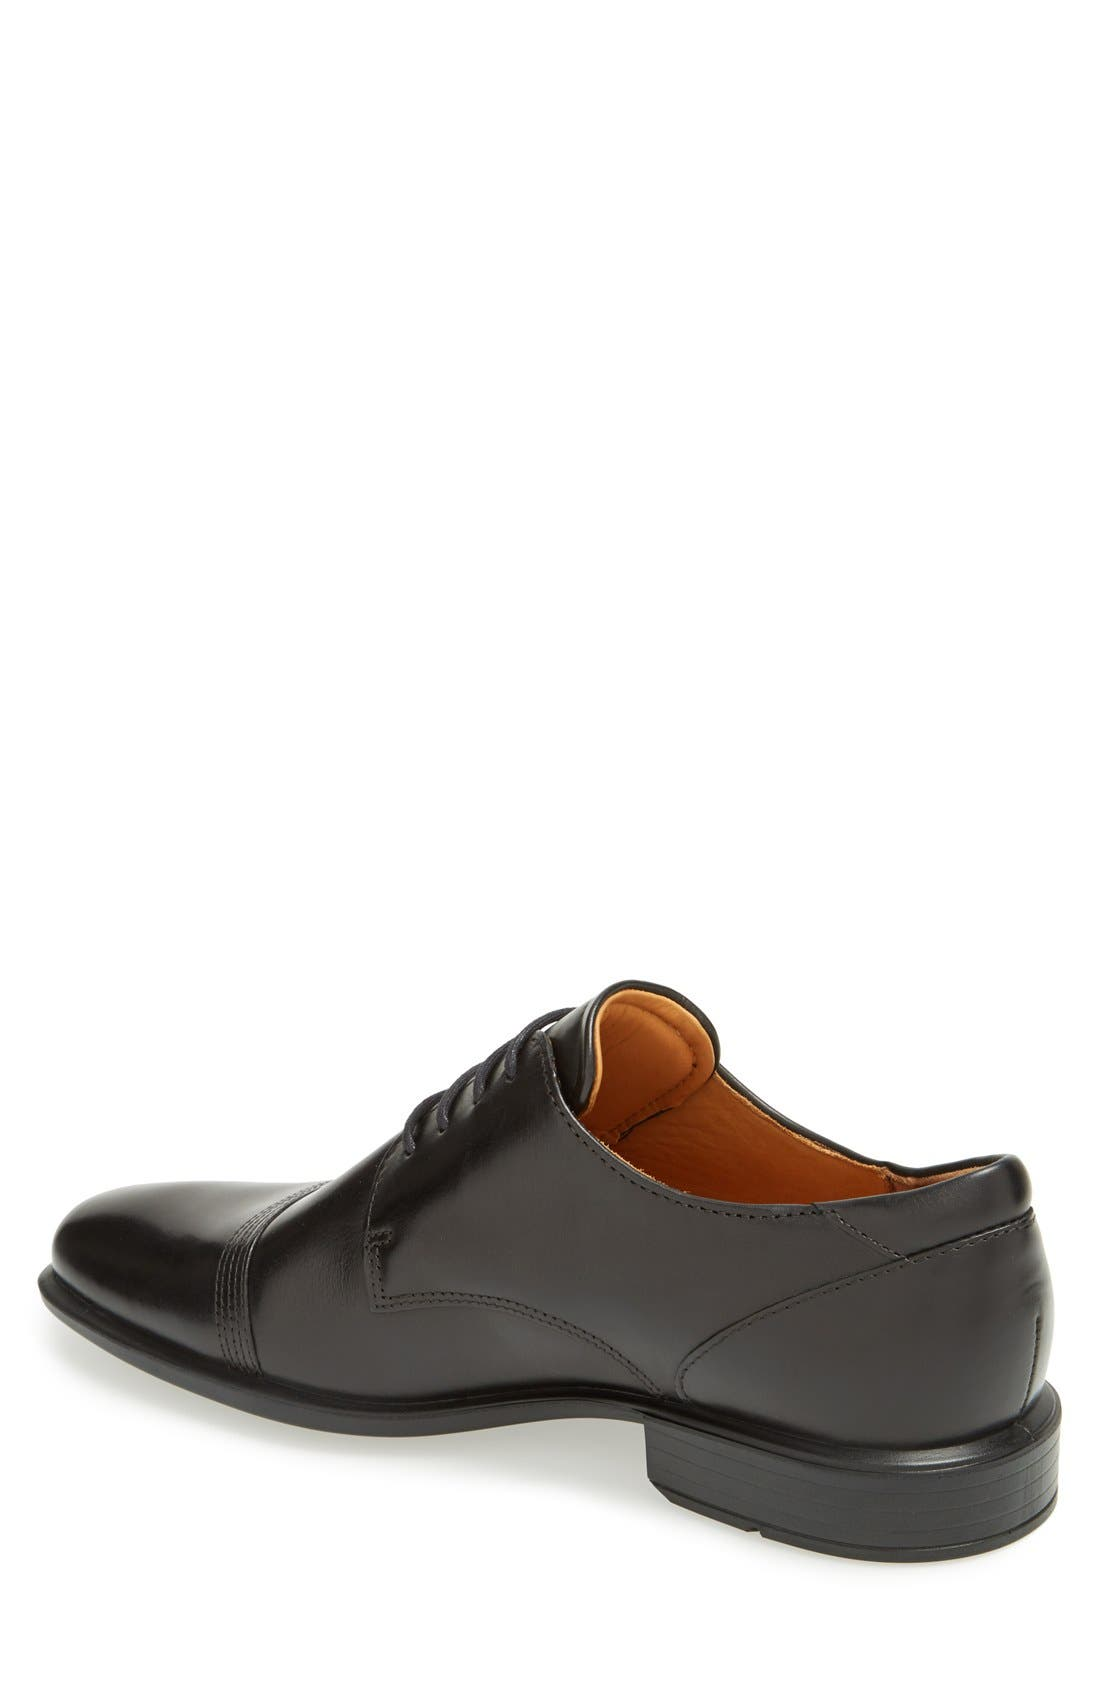 Alternate Image 2  - ECCO 'Cairo' Cap Toe Derby (Men)